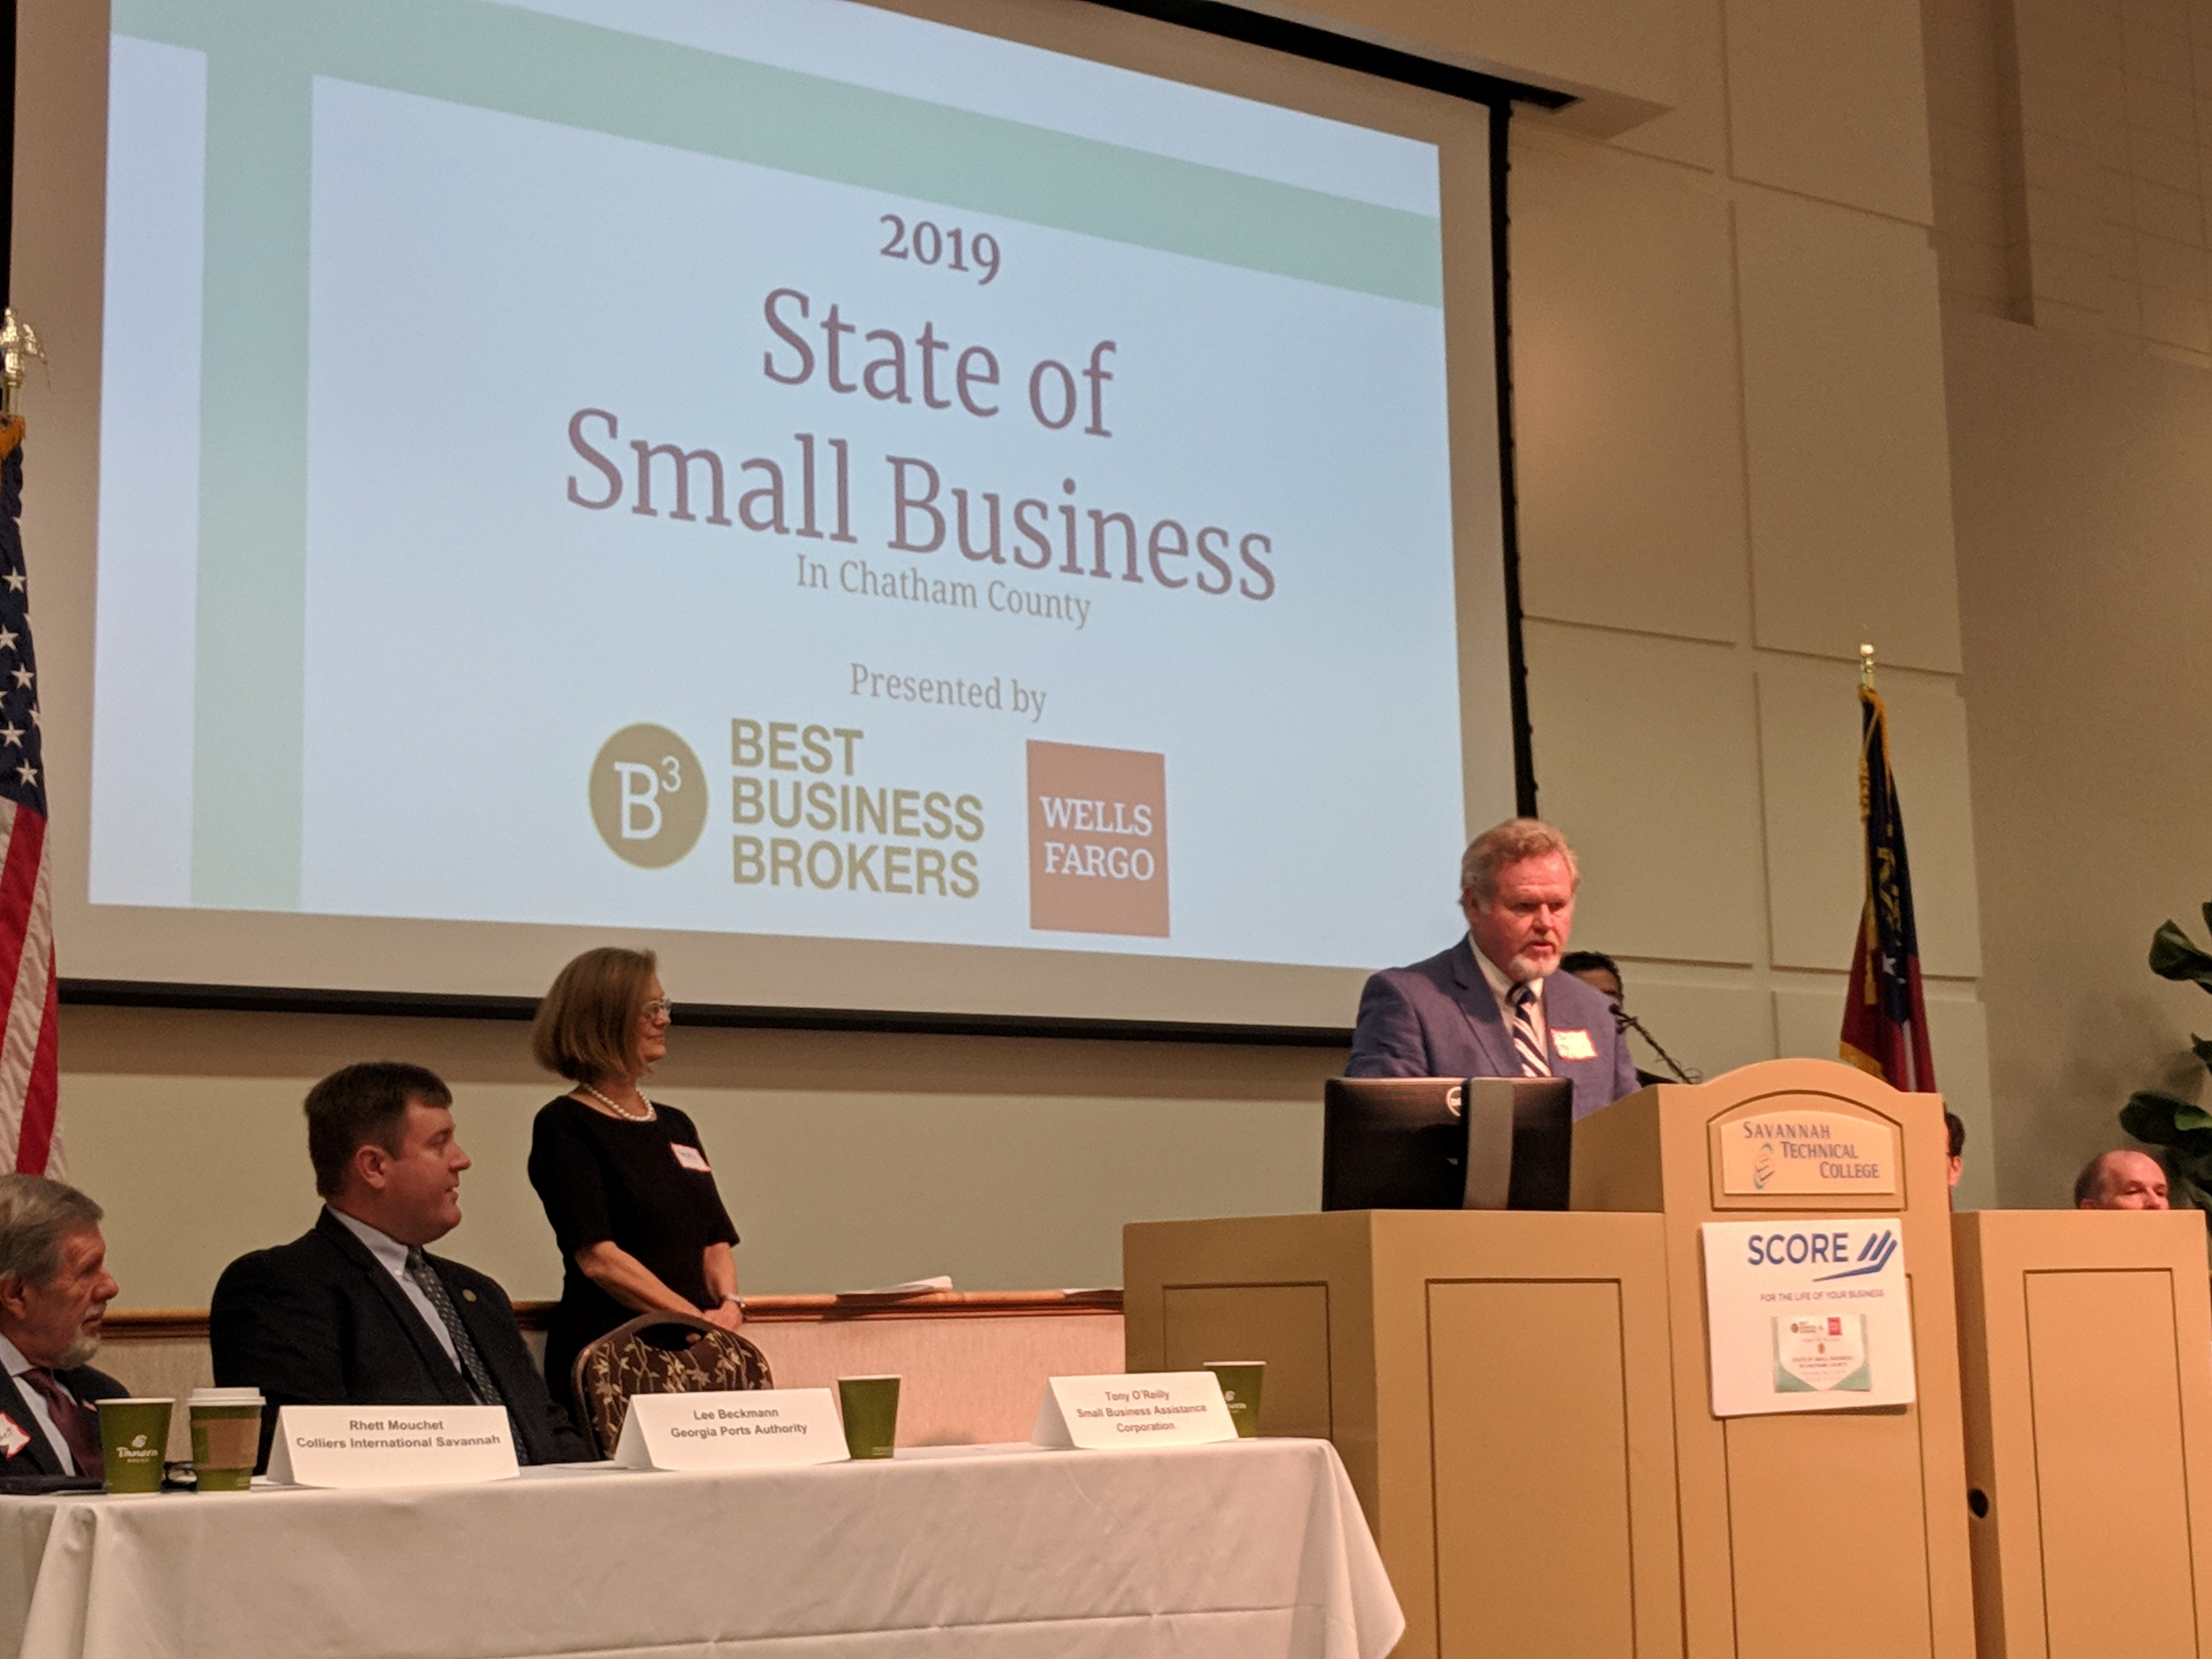 Tony O'Reilly presenting at 2019 State of Small Business in Savannah